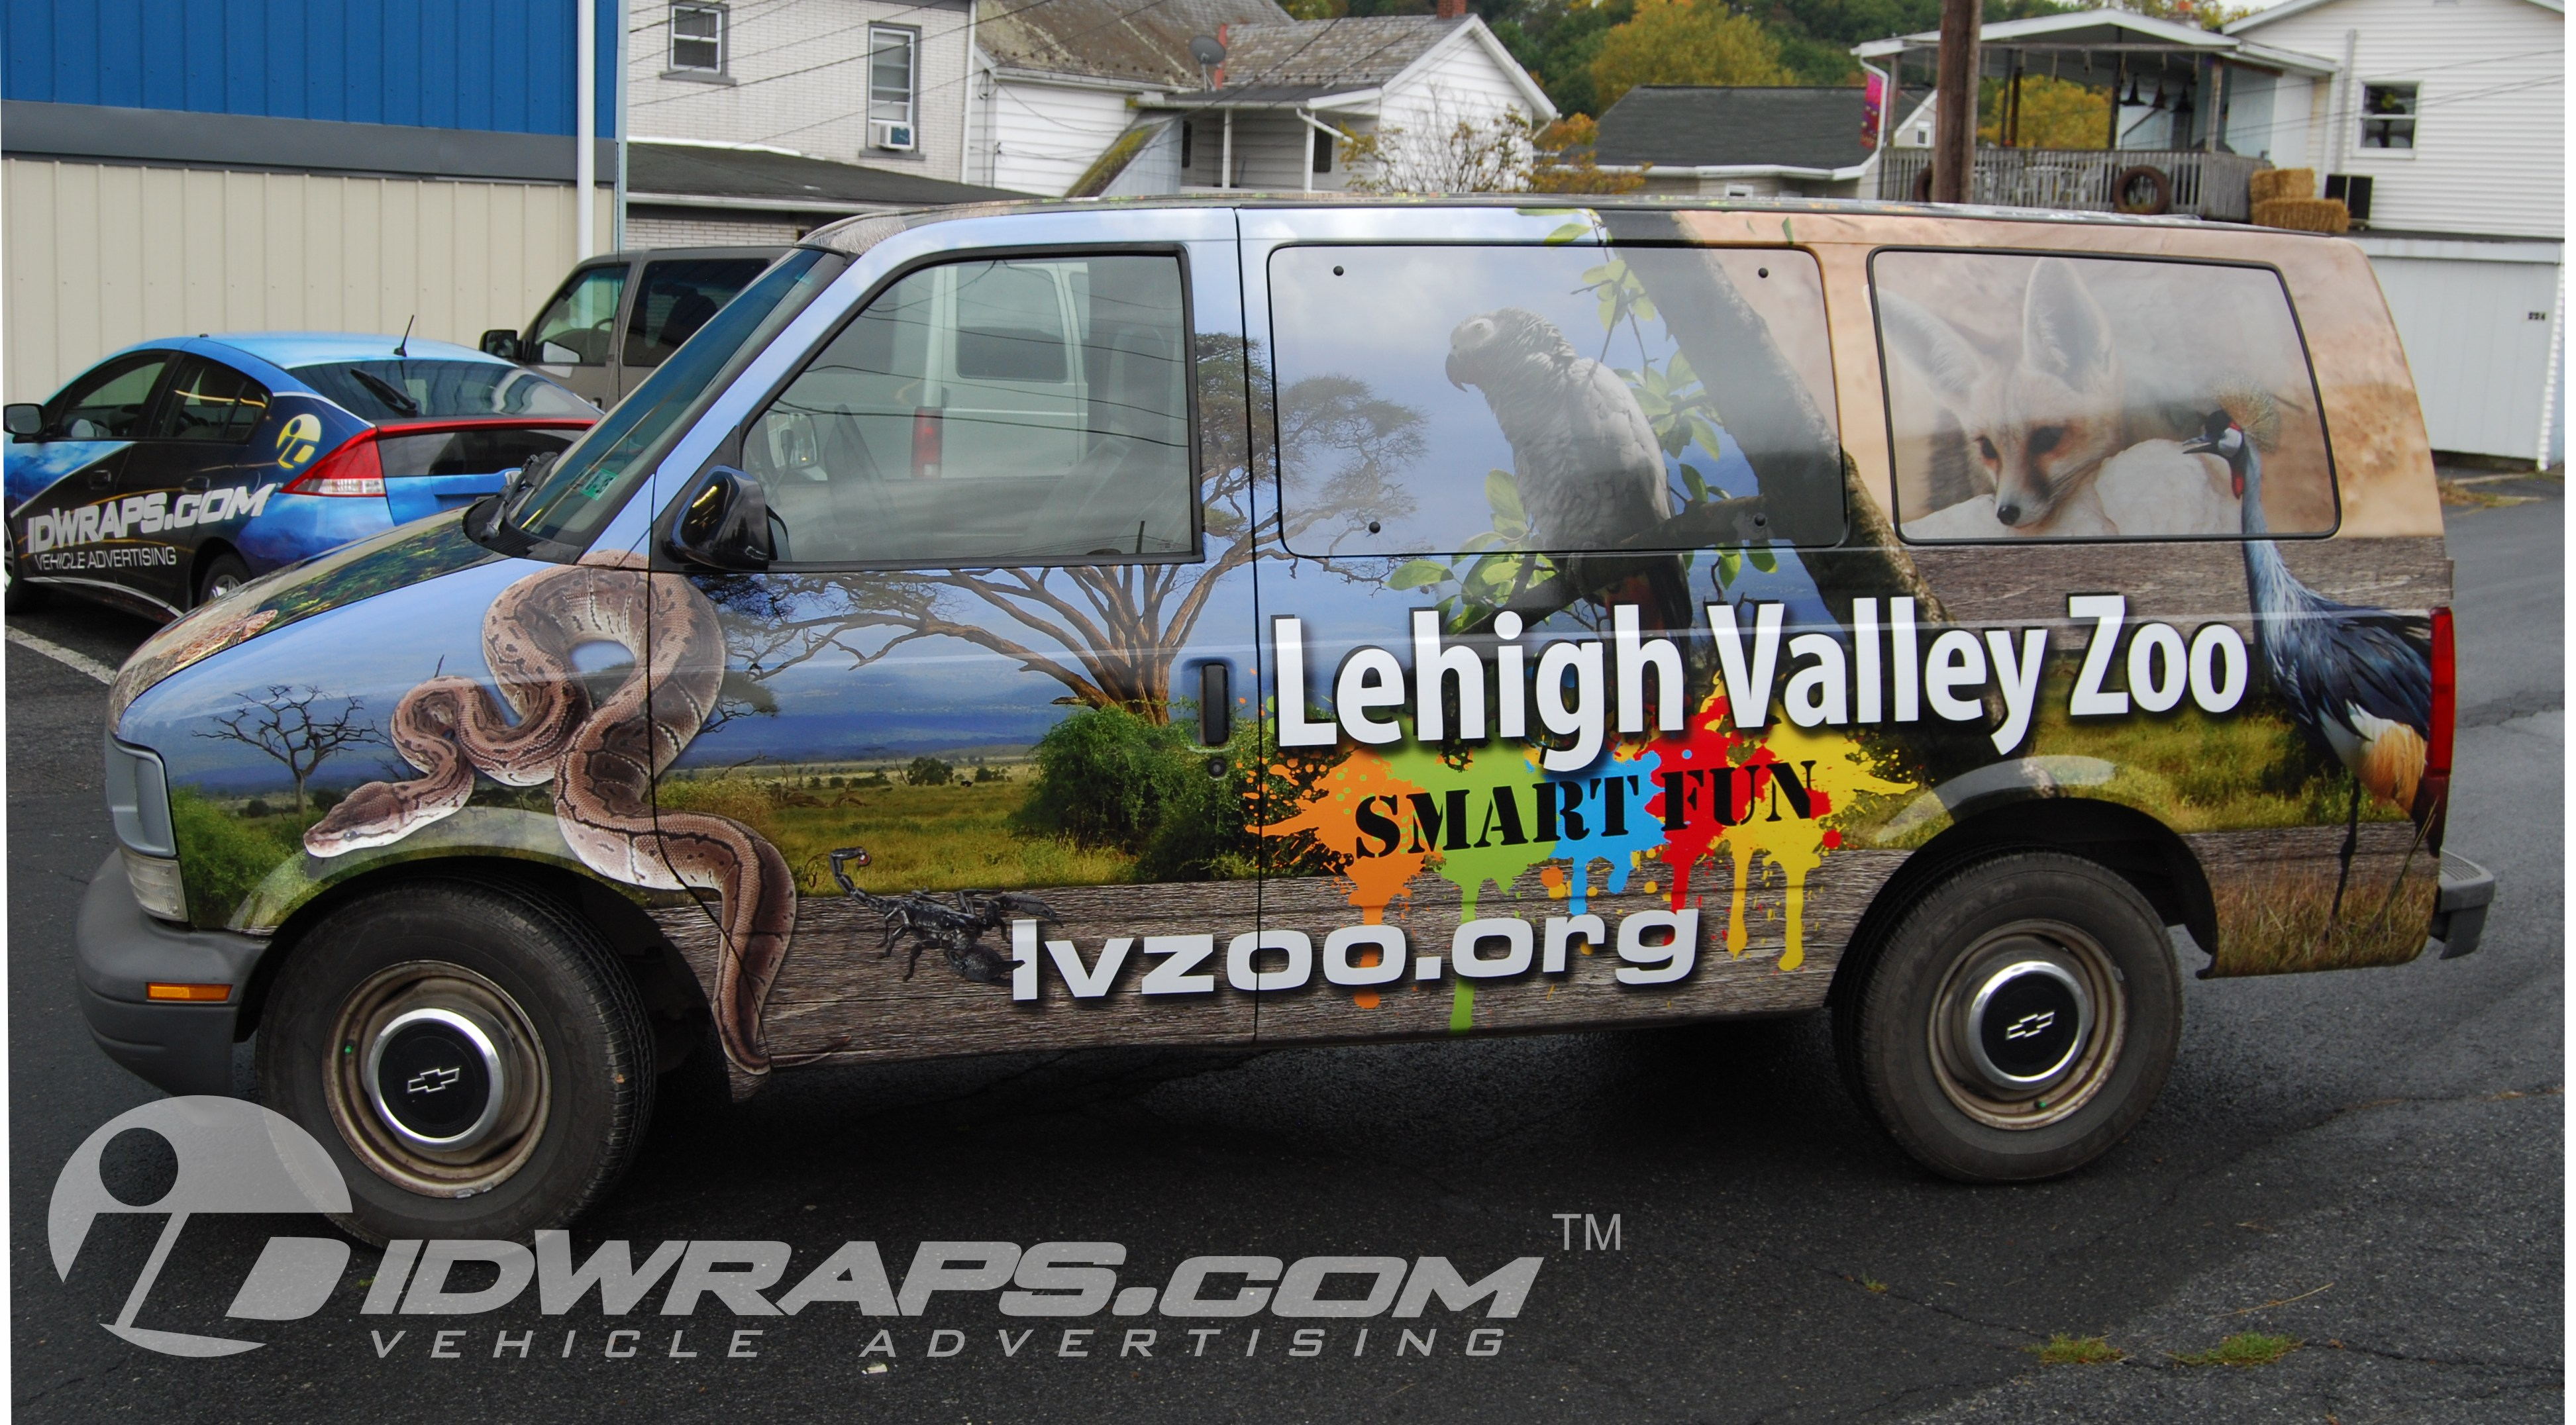 lehigh-valley-zoo-auto-wrapping-chevy-astro-van-3m-graphics